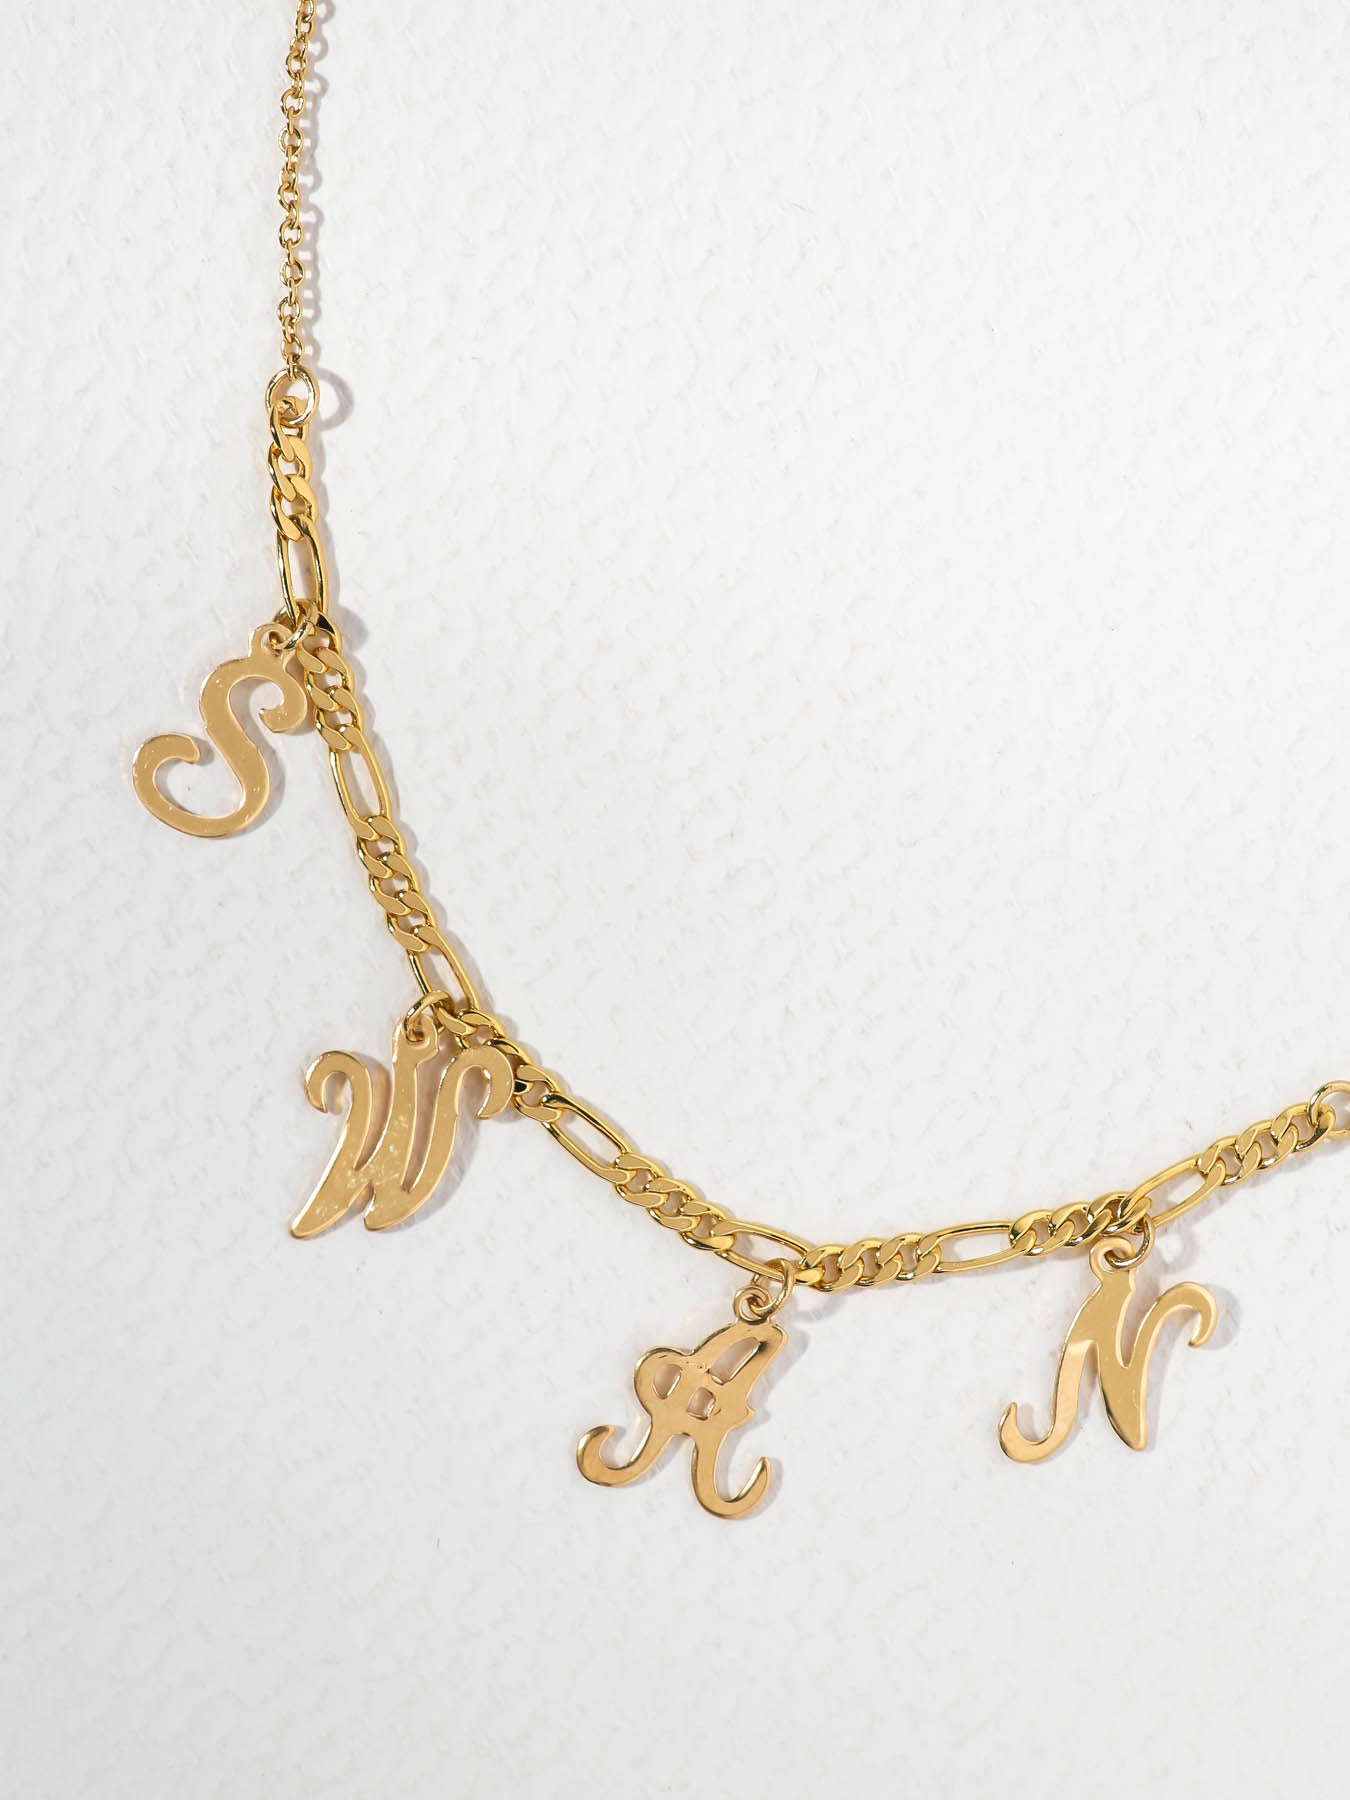 The Swan Charm Necklace